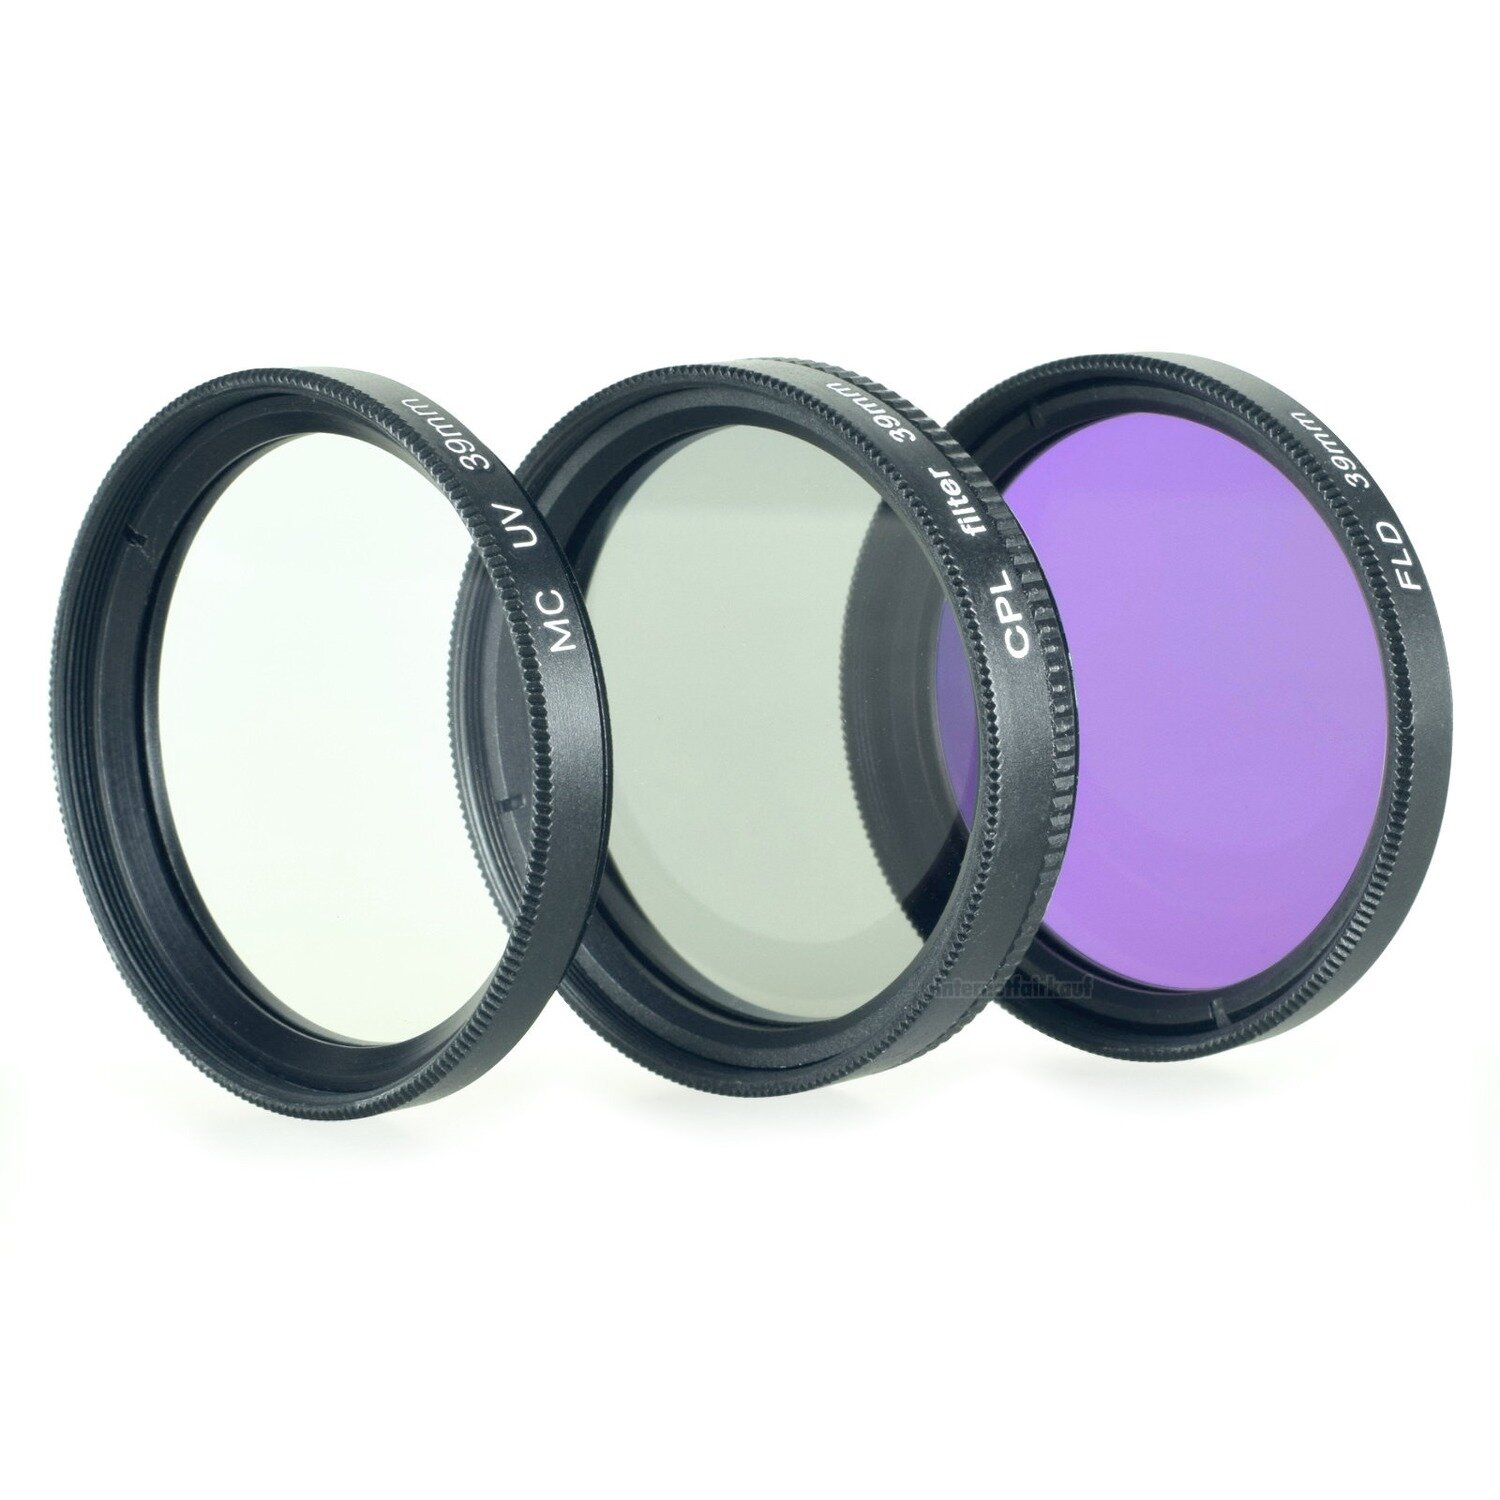 UV + Pol + FD Filter 39mm